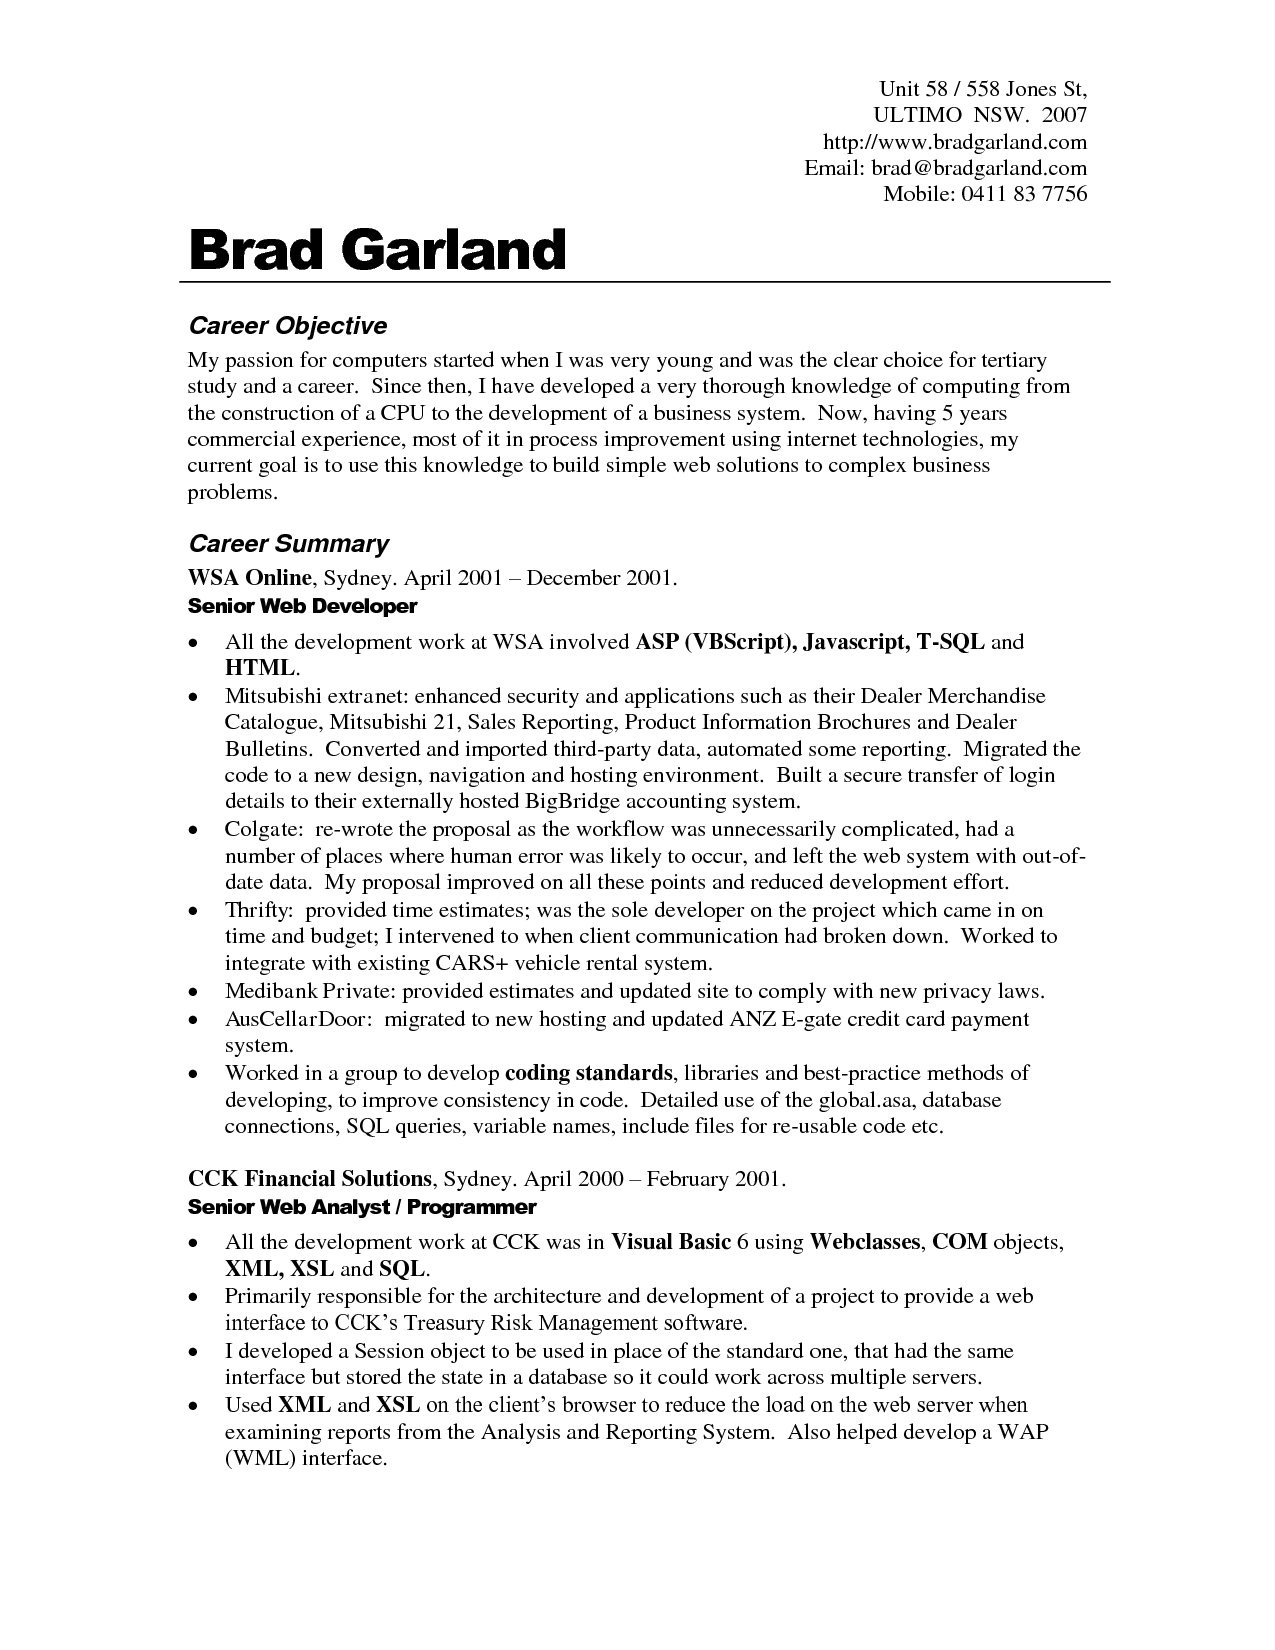 Objective Examples For Resume Resume Objectives Examples Best Templateresume Objective Examples